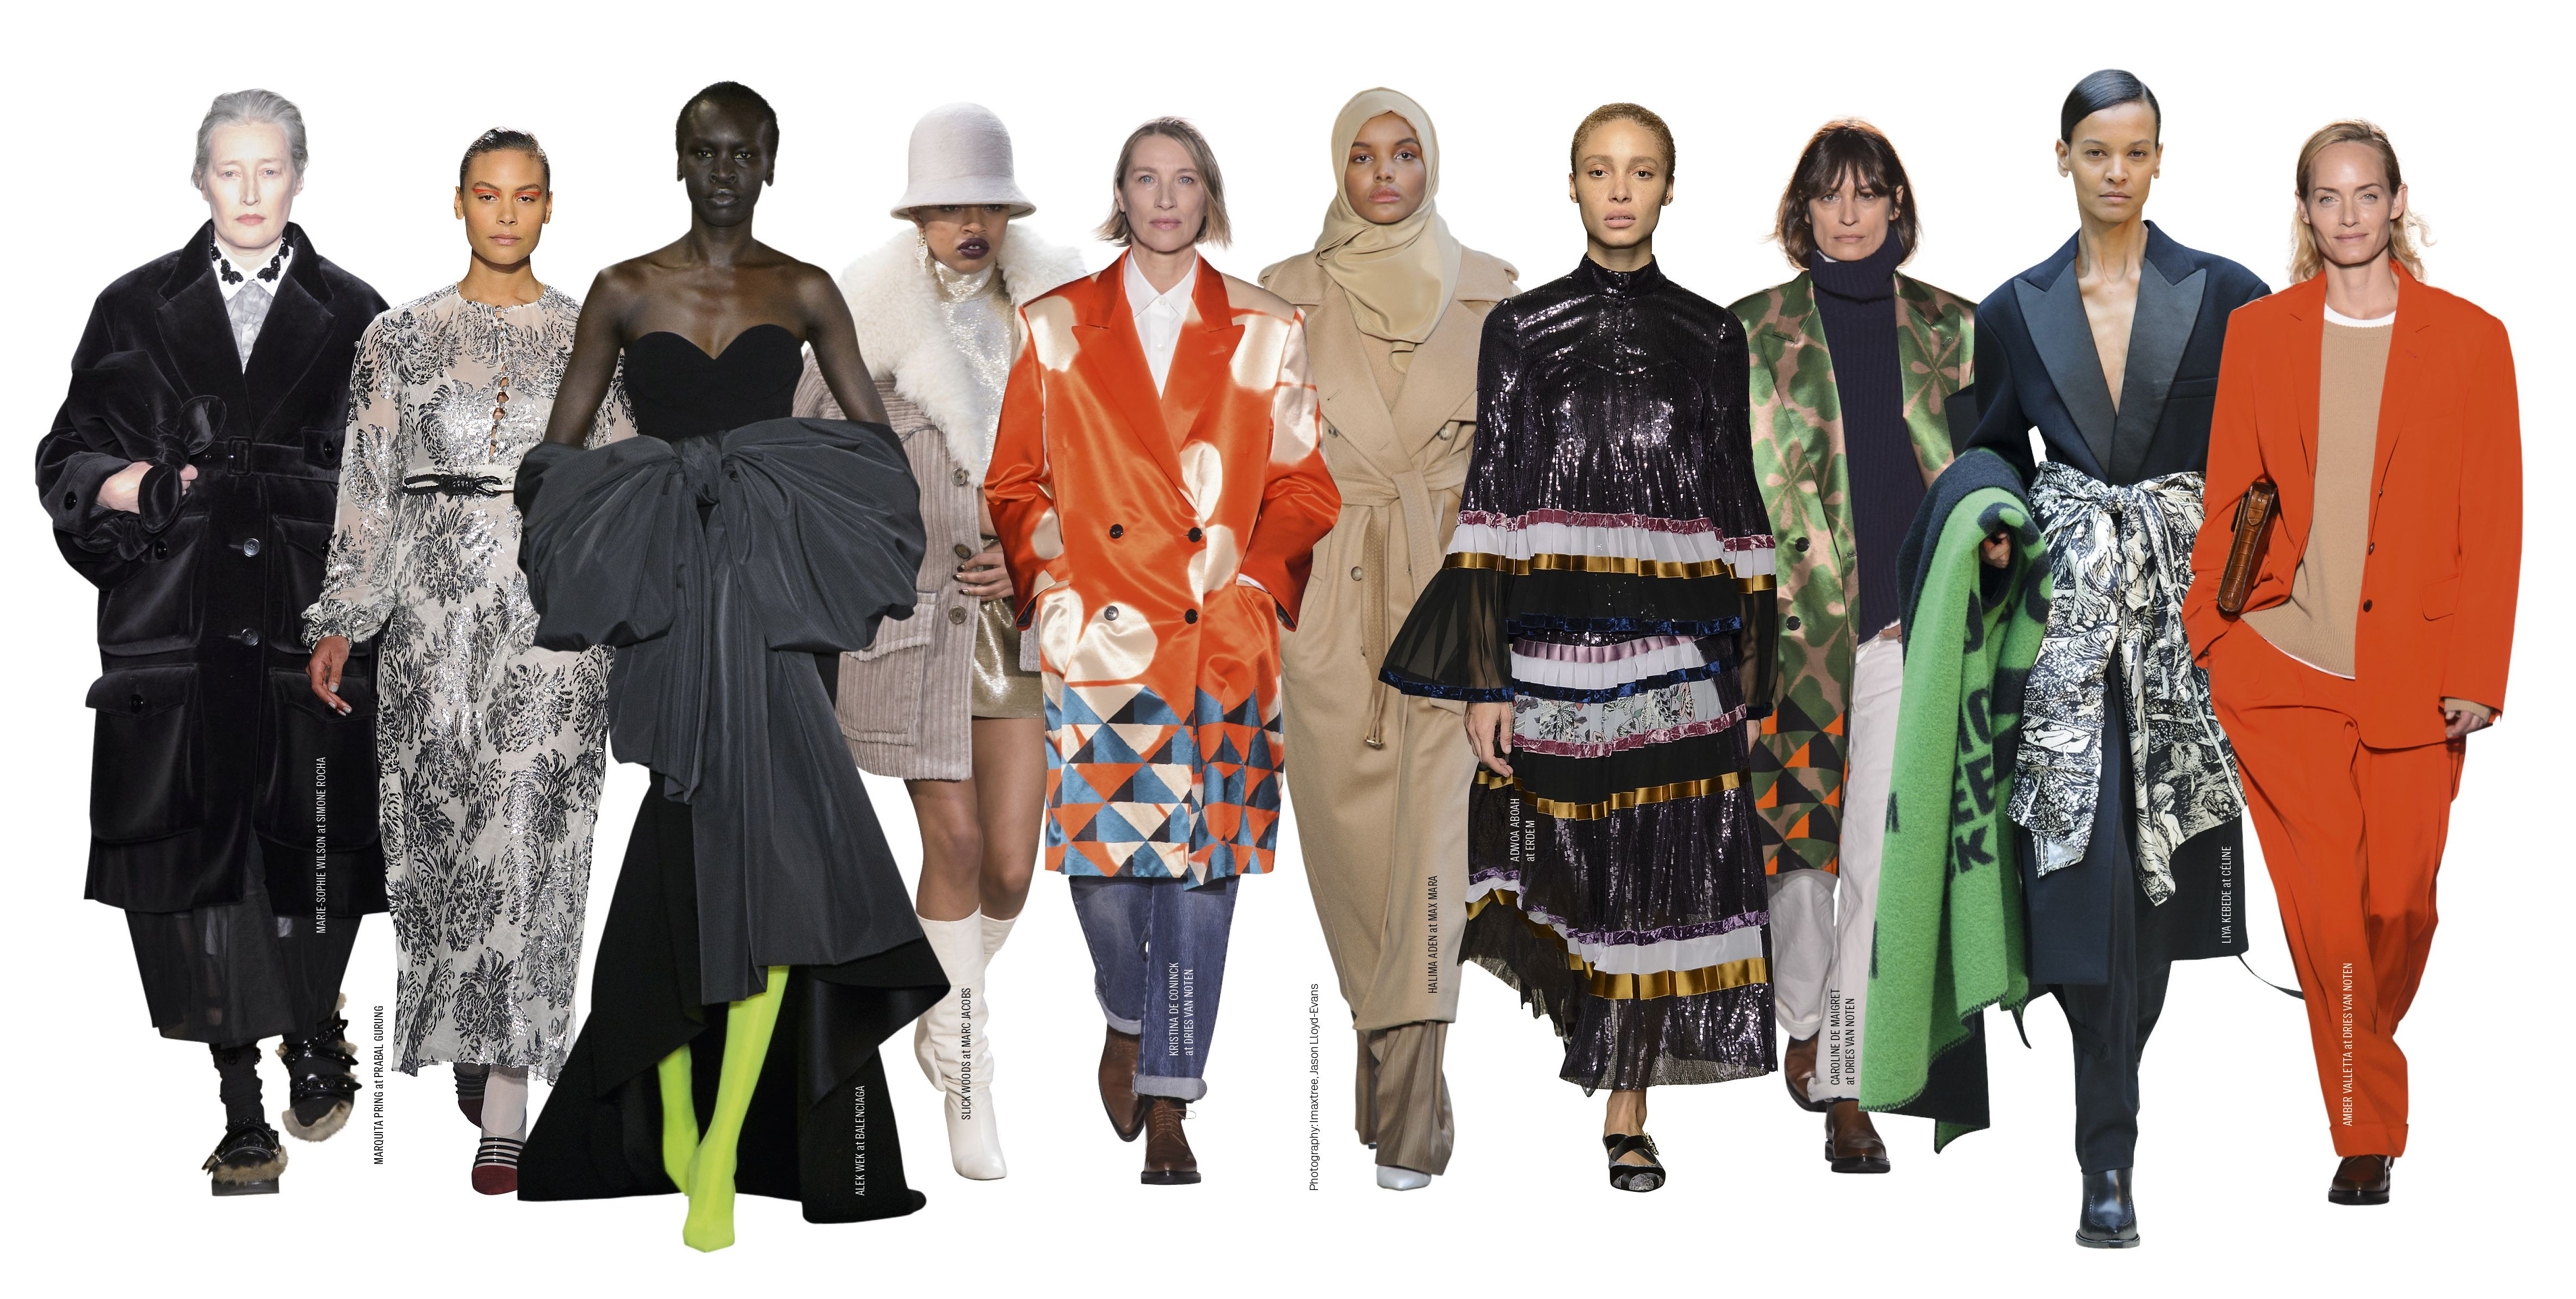 f44d0eef3a9 Is The Fashion World Finally Getting Diversity